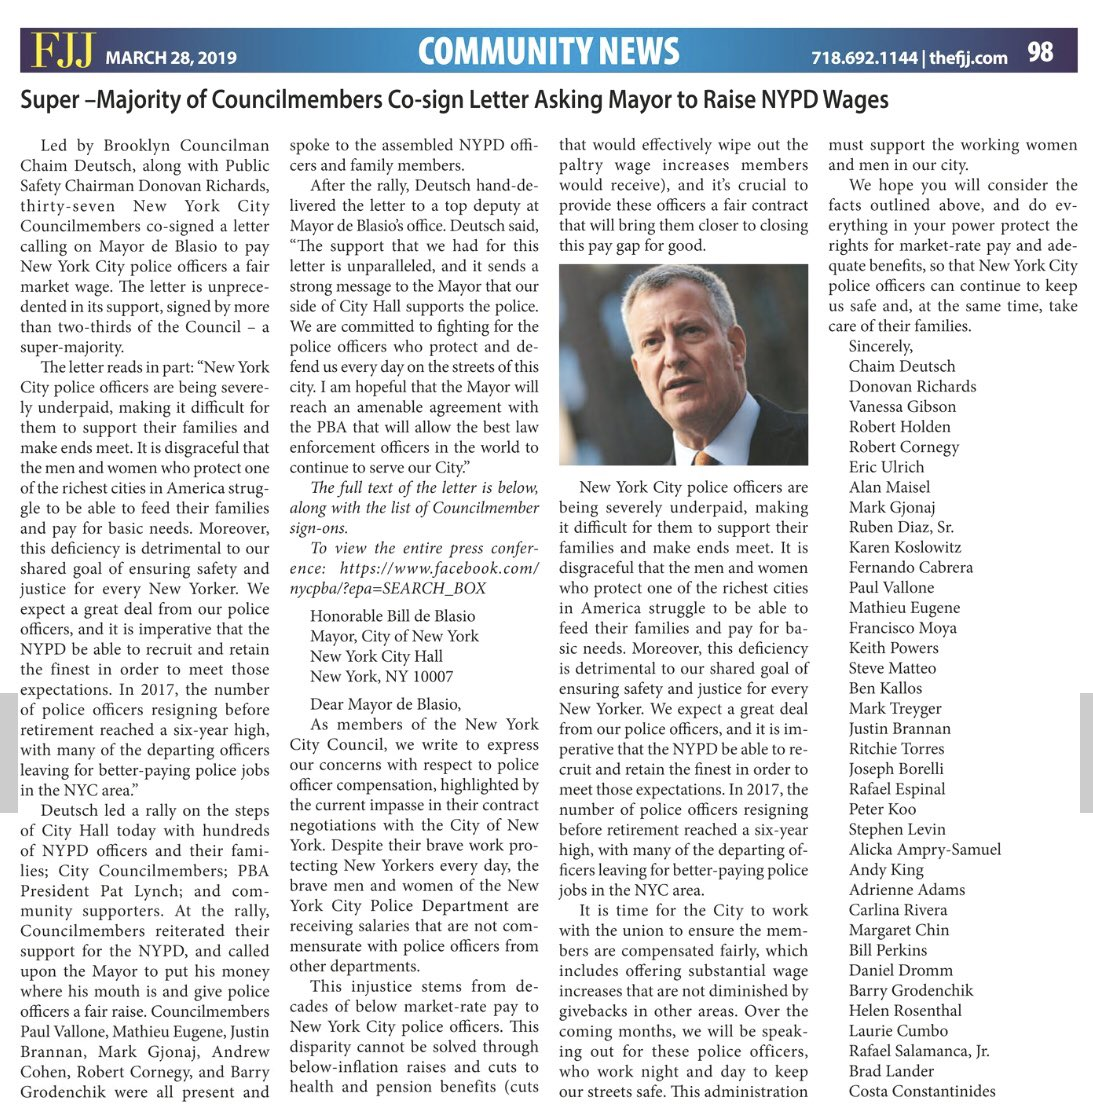 Councilman Deutsch On Twitter Thanks To The Flatbush Jewish Journal For Printing Our Letter To Nycmayor Calling For A Fair Market Wage For Nypd Officers Thanks To The Fjj For Highlighting The